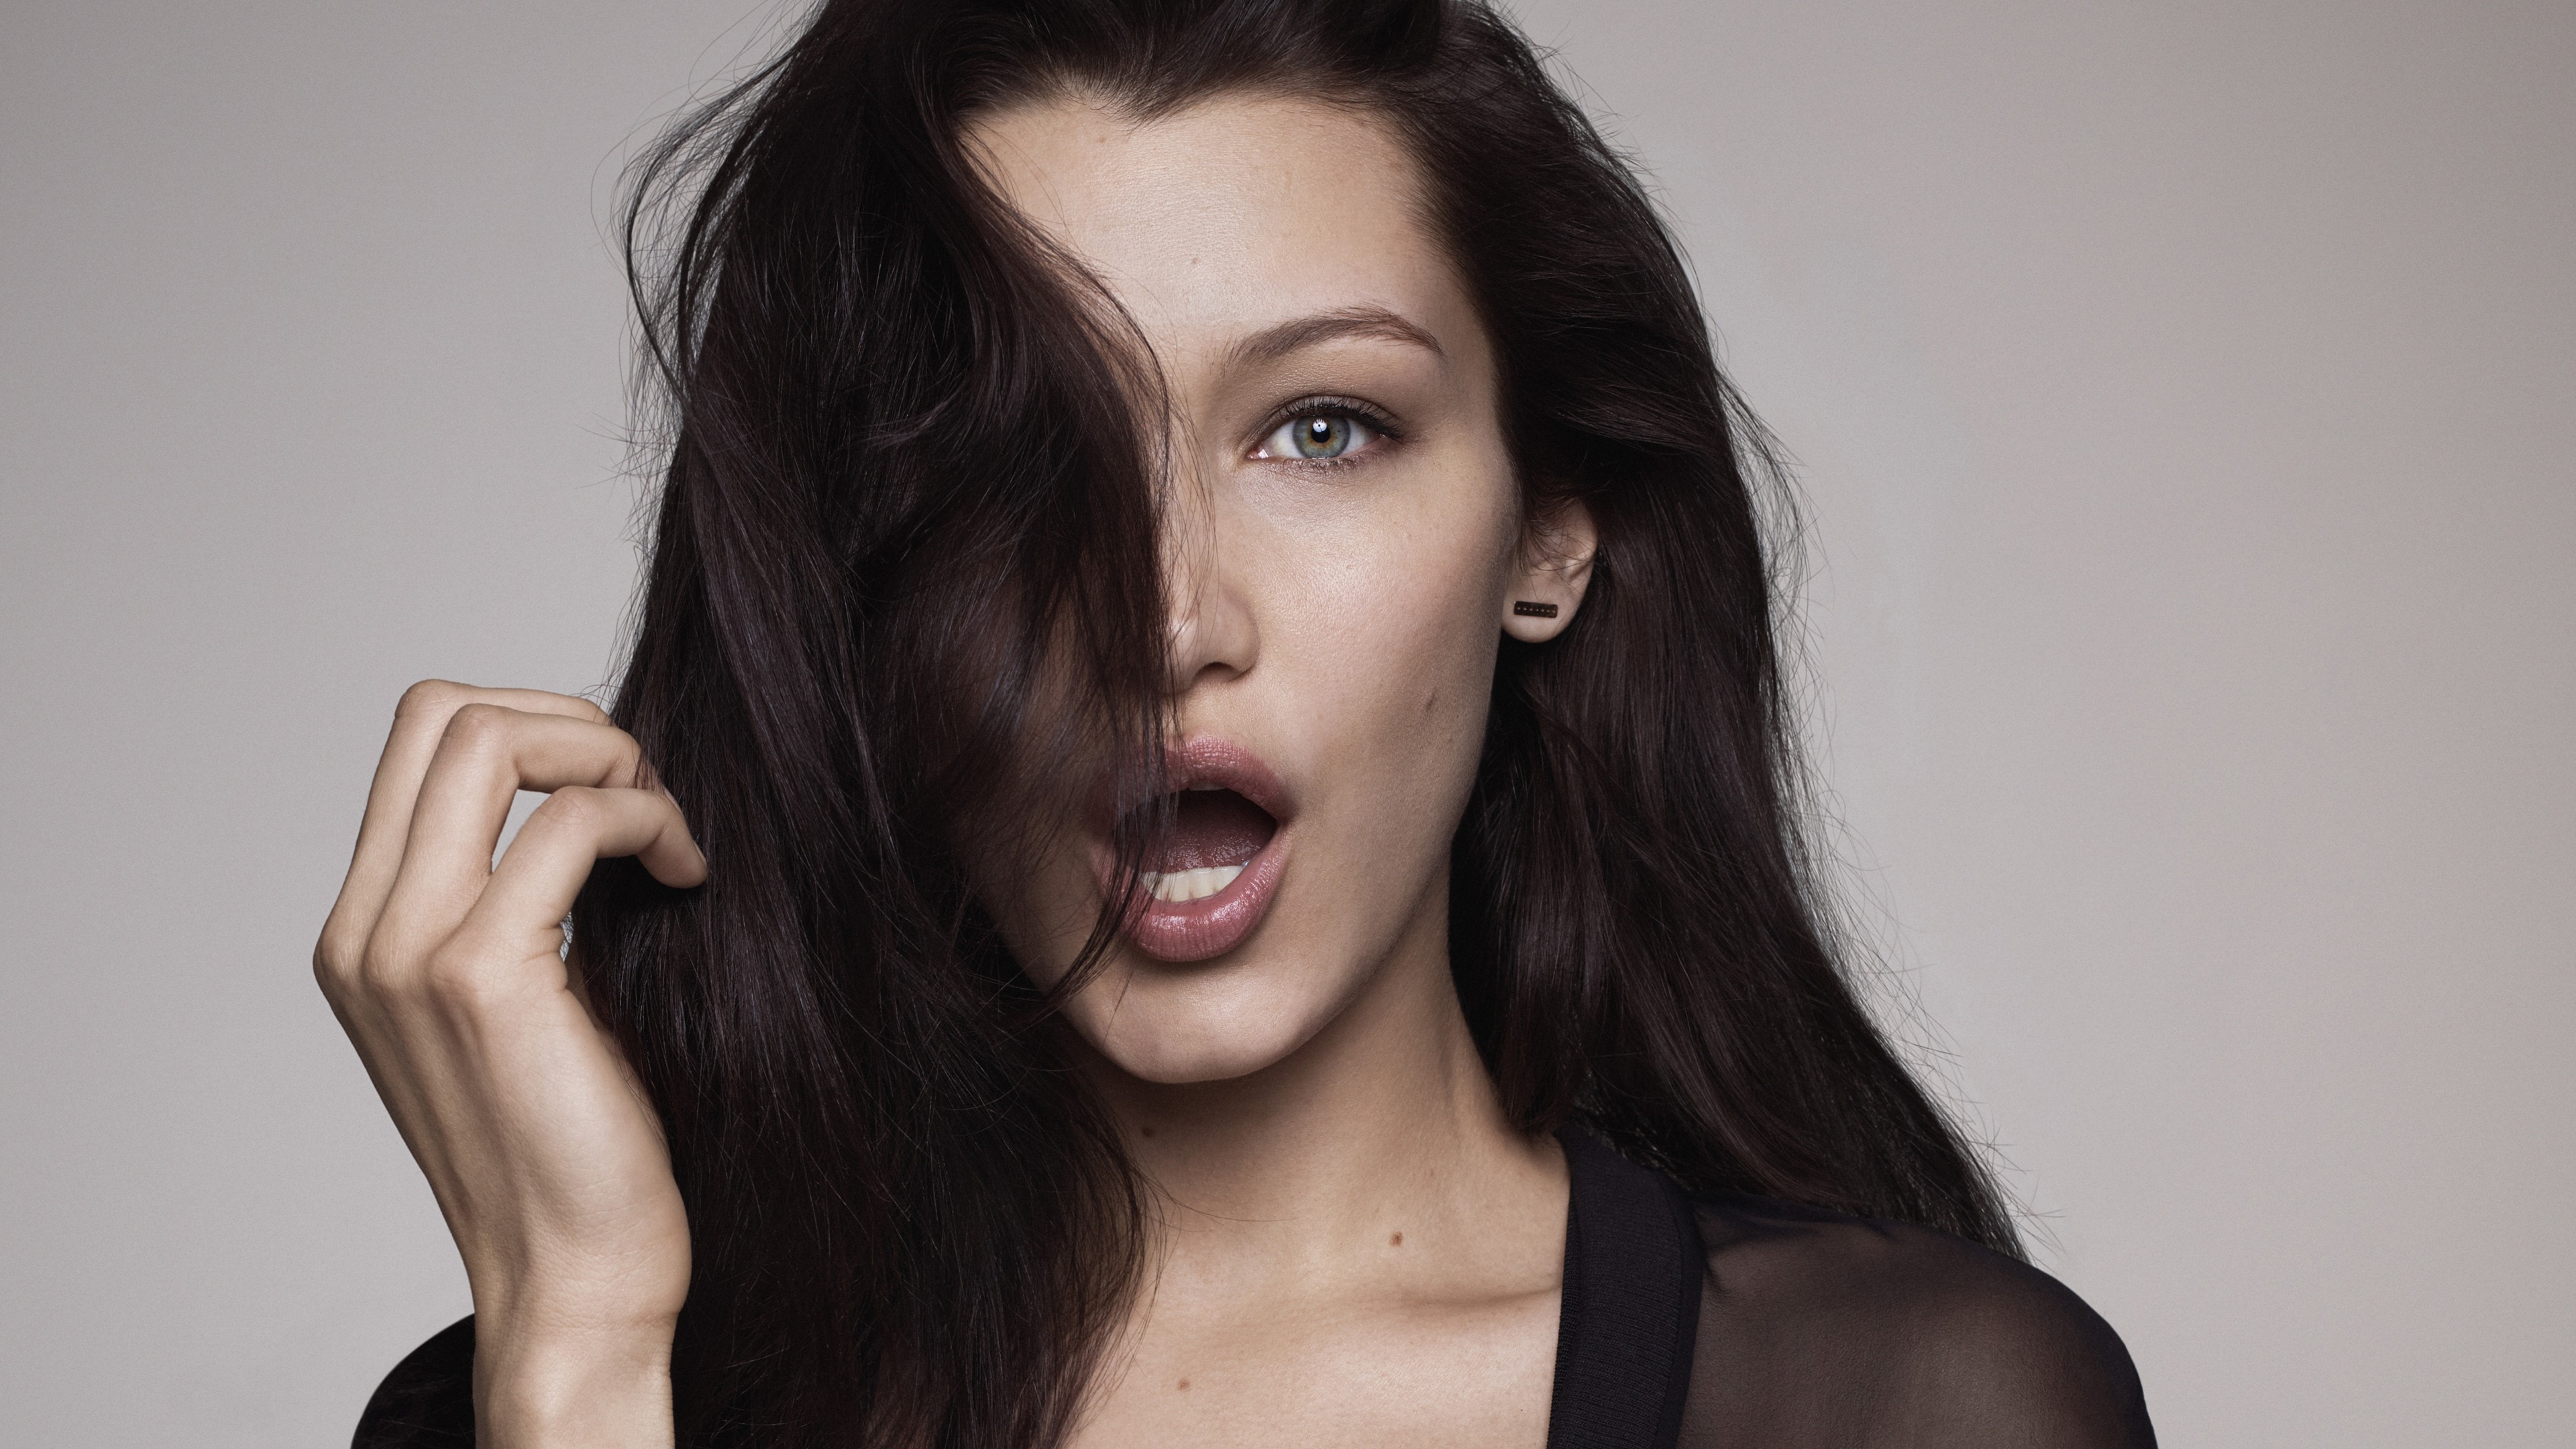 Hd Wallpaper Girl Face Wallpaper Bella Hadid Beauty 4k Celebrities 16121